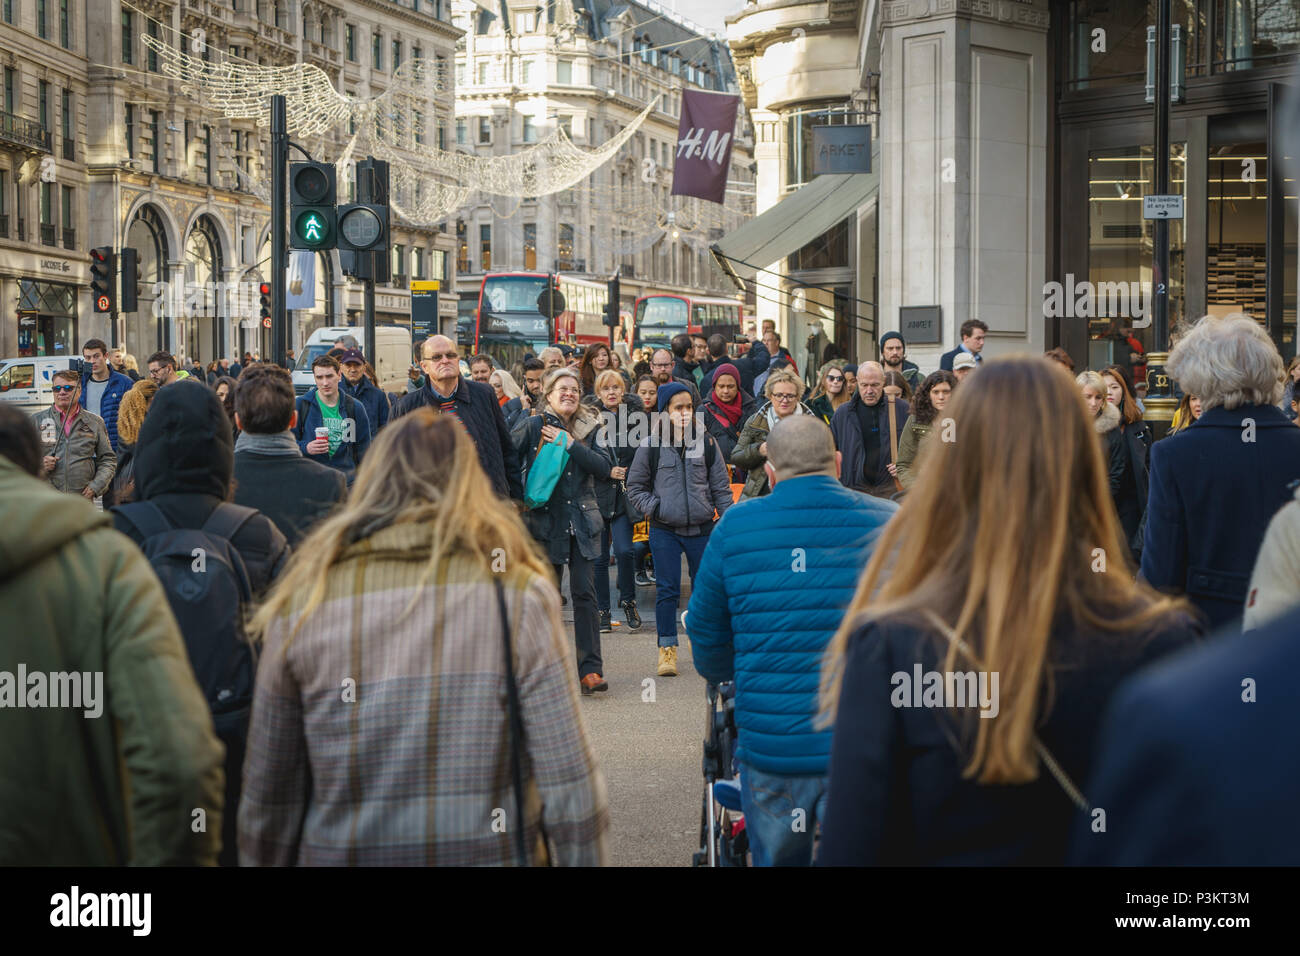 London, UK - November 2017. Decorated Regents Street crowded with people shopping for Christmas. Landscape format. Stock Photo